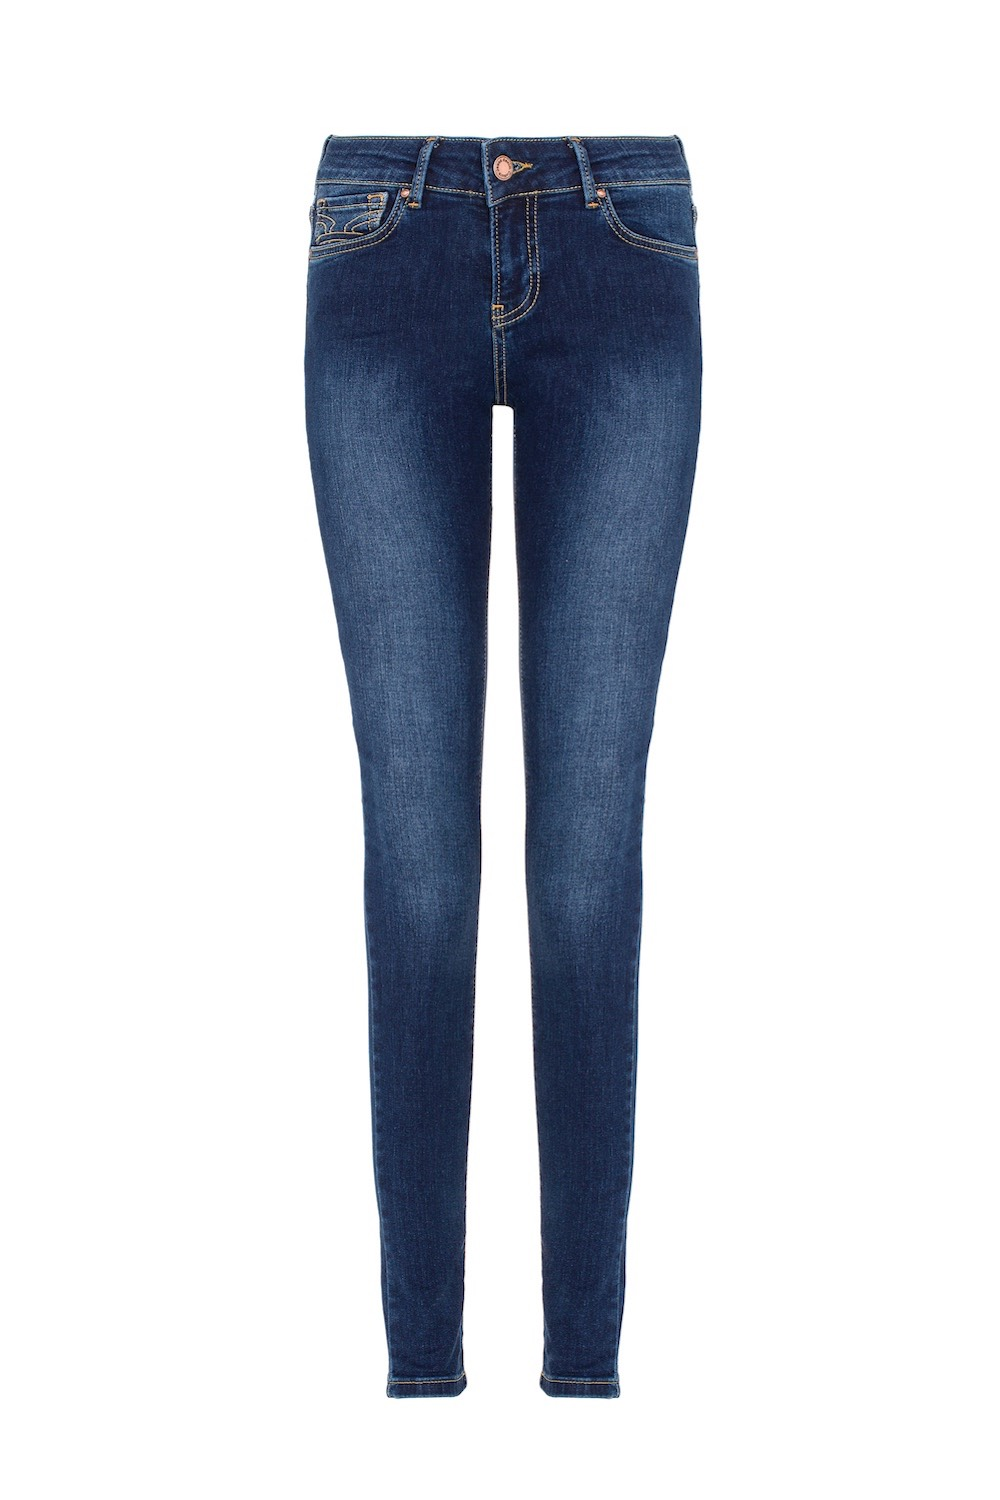 Straight Fit Woven Jean HELLA Damen